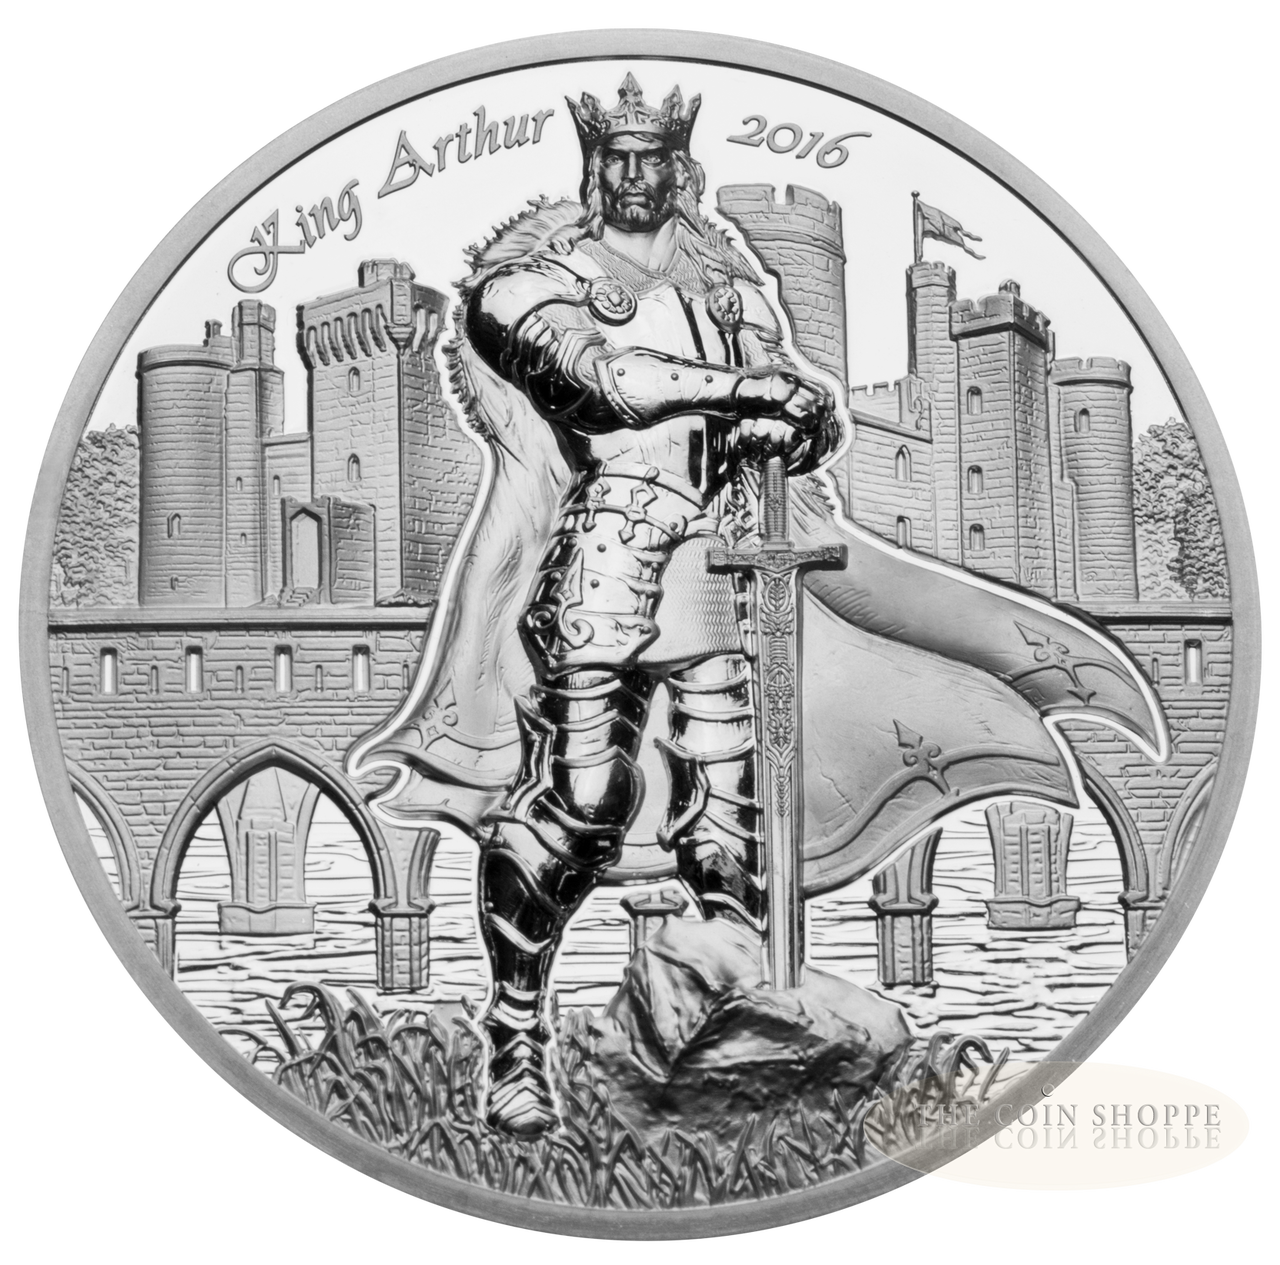 LEGENDS OF CAMELOT KING ARTHUR 2016 2 oz Ultra High Relief Proof Silver Coin